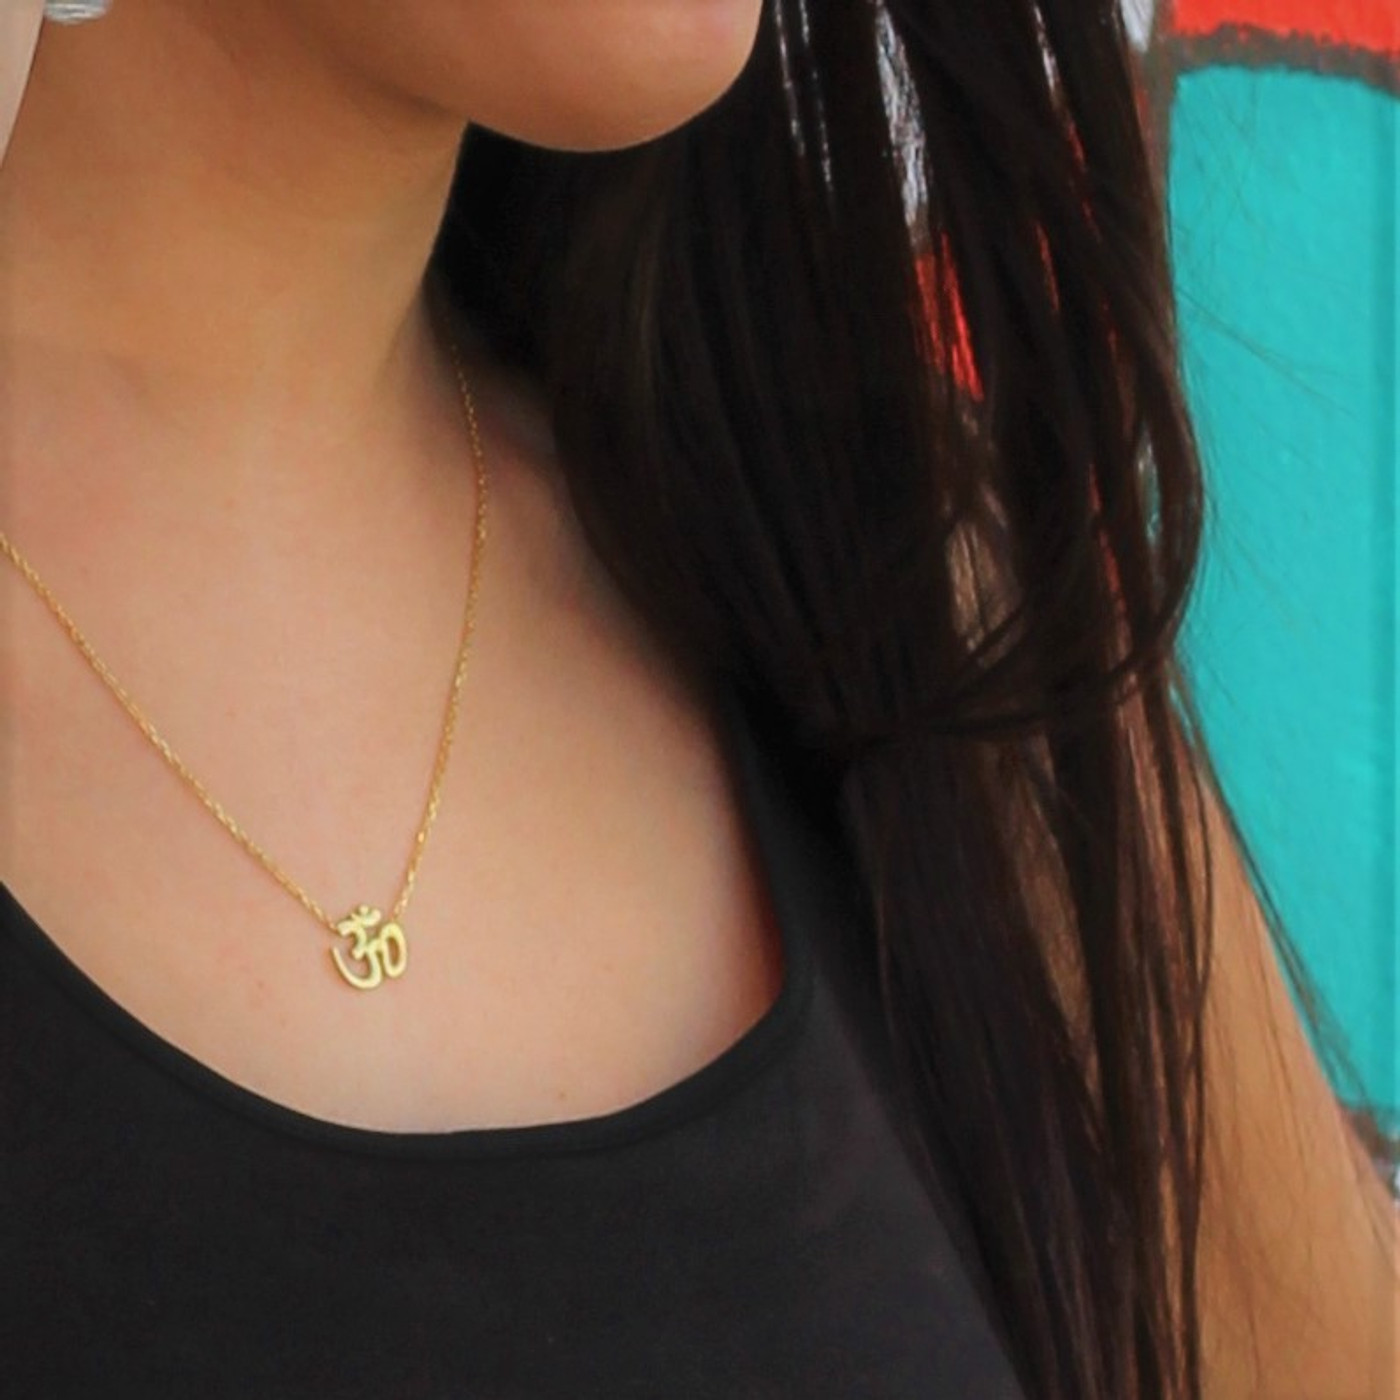 18K Gold over Sterling Silver OM Necklace